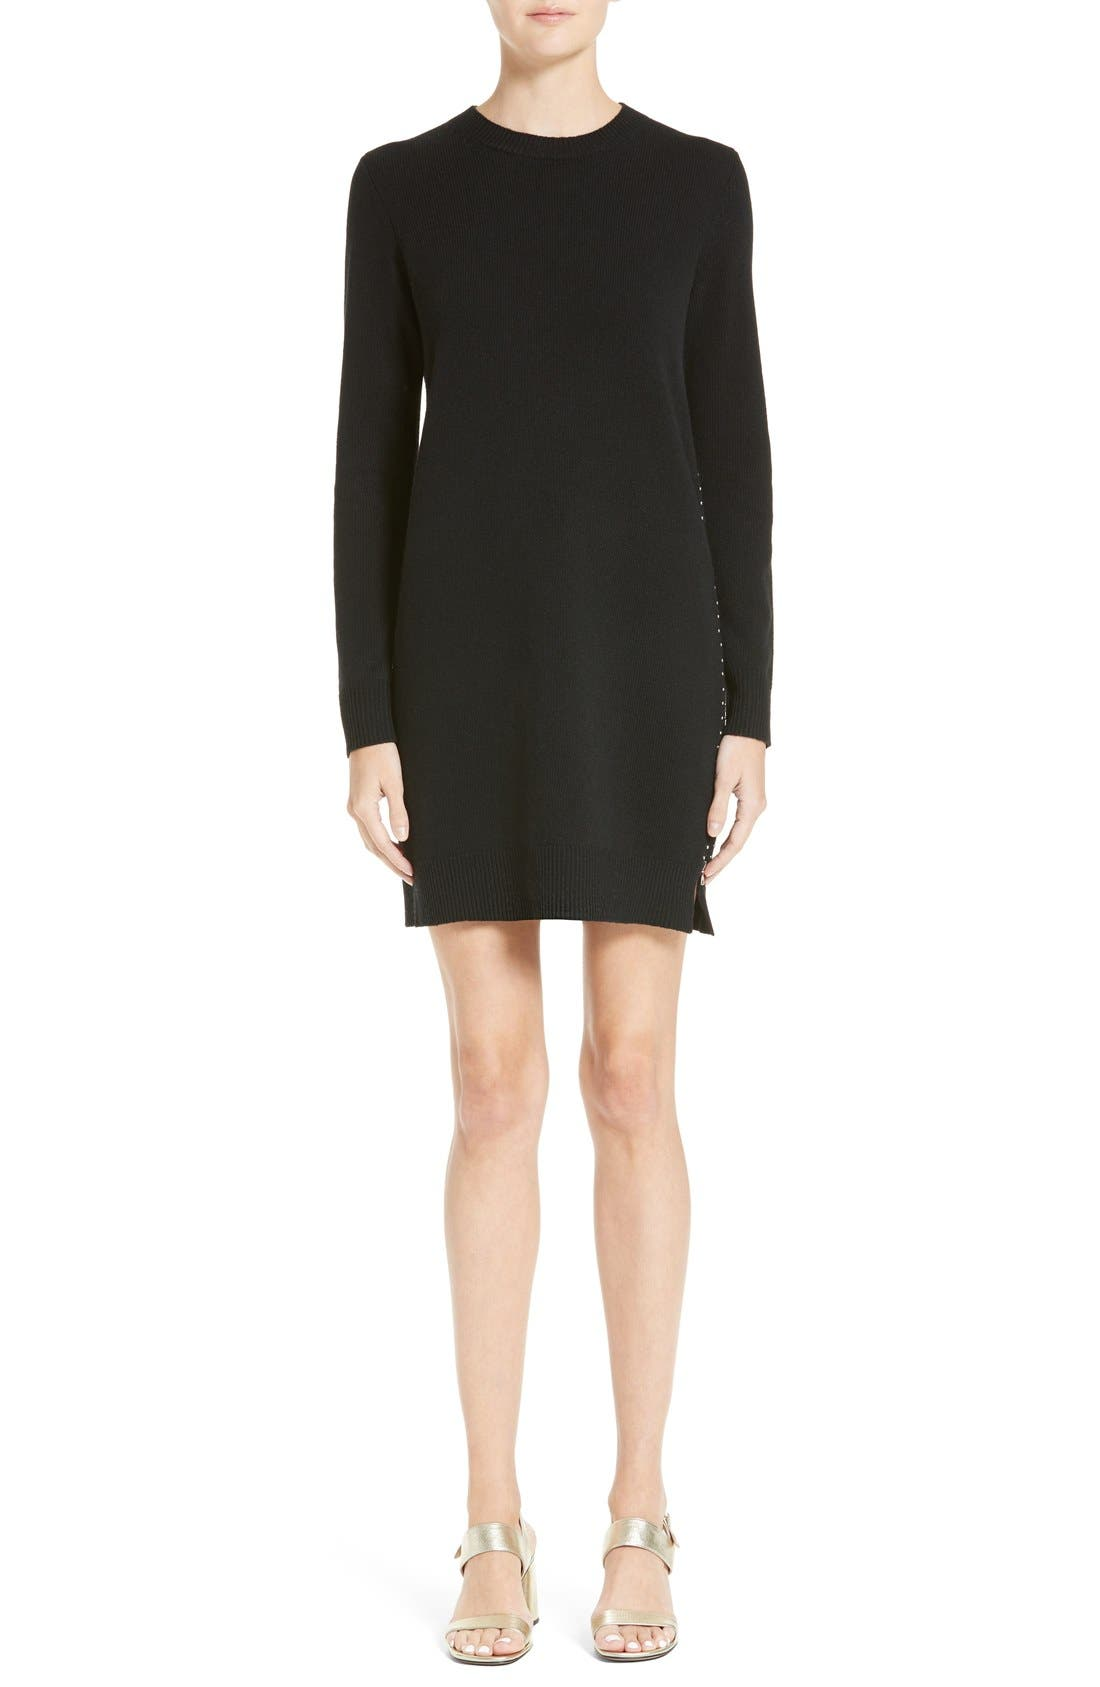 MARC JACOBS Zipper Detail Wool Dress